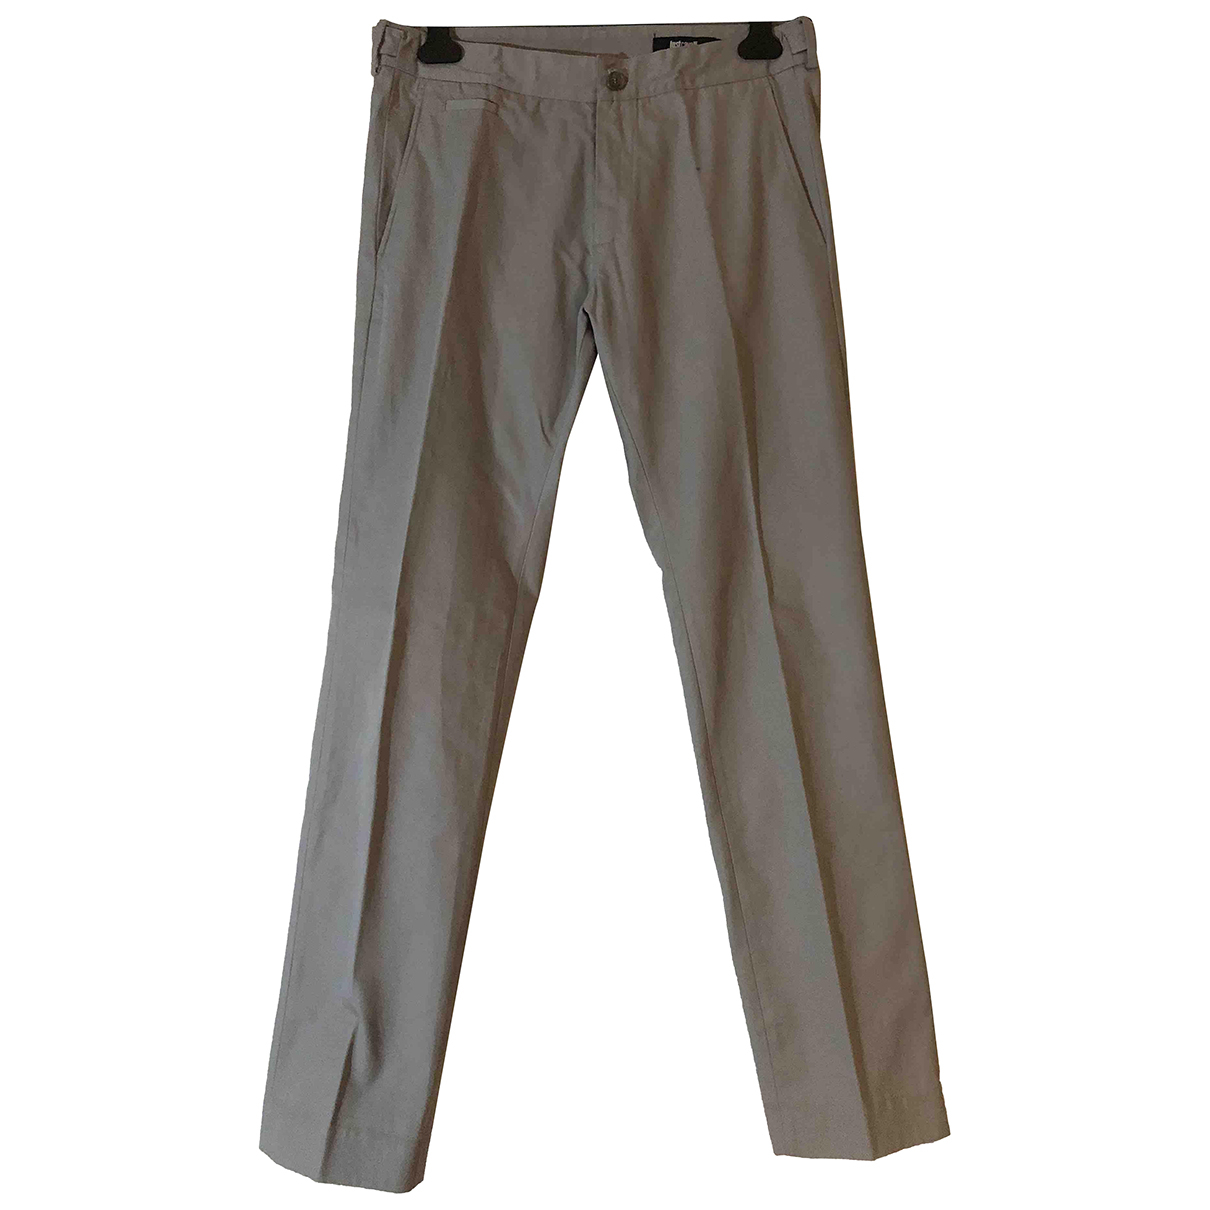 Just Cavalli N Grey Cotton Trousers for Men 48 IT